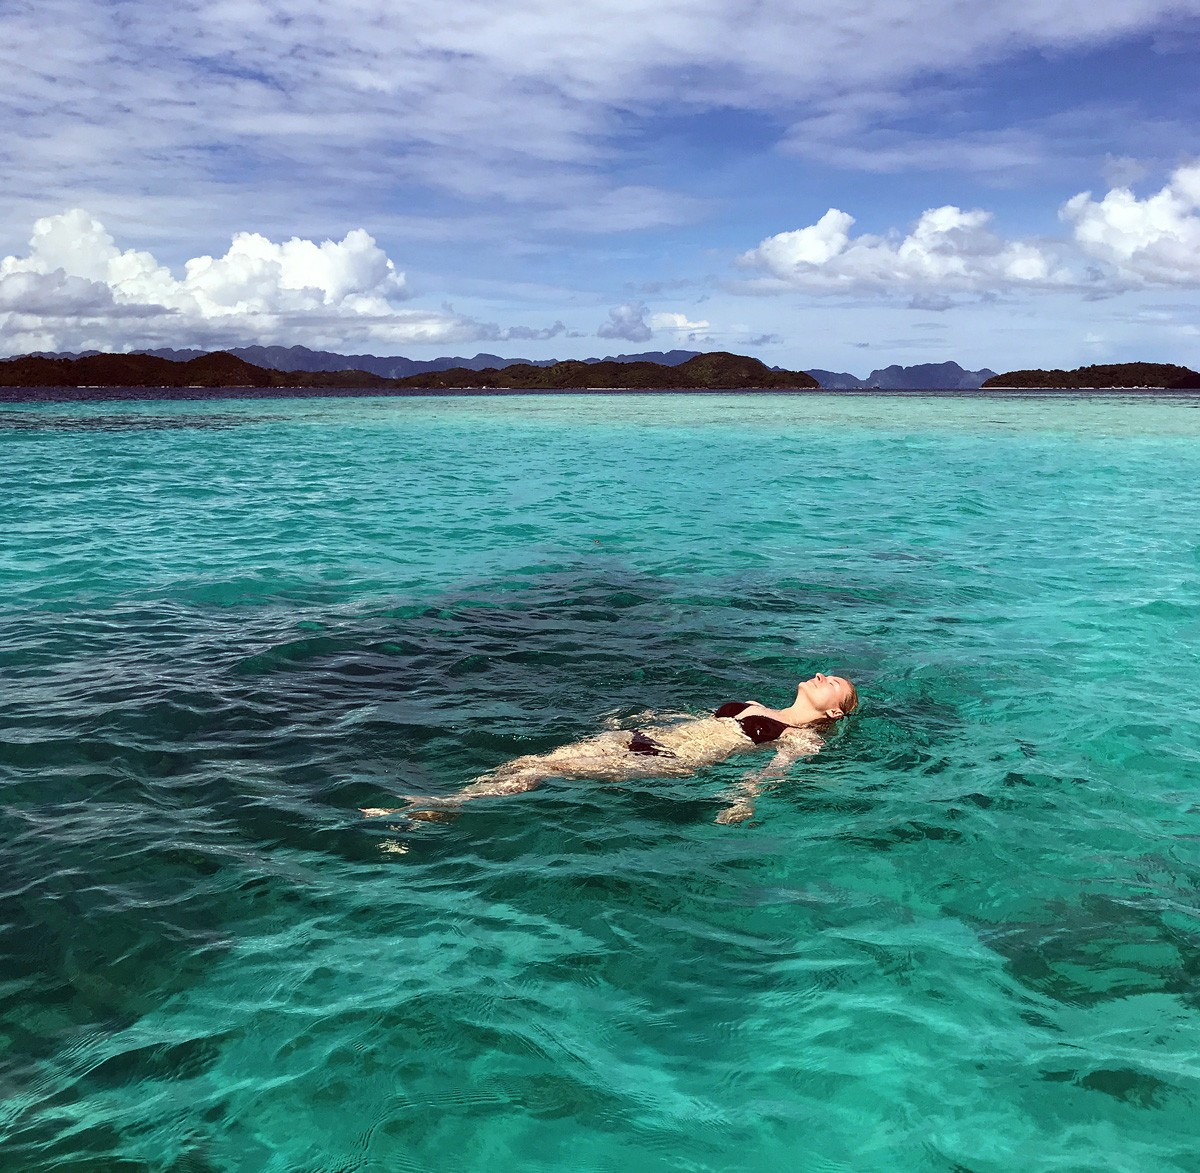 Nastia swim in the open sea, Palawan - Travelblogstories